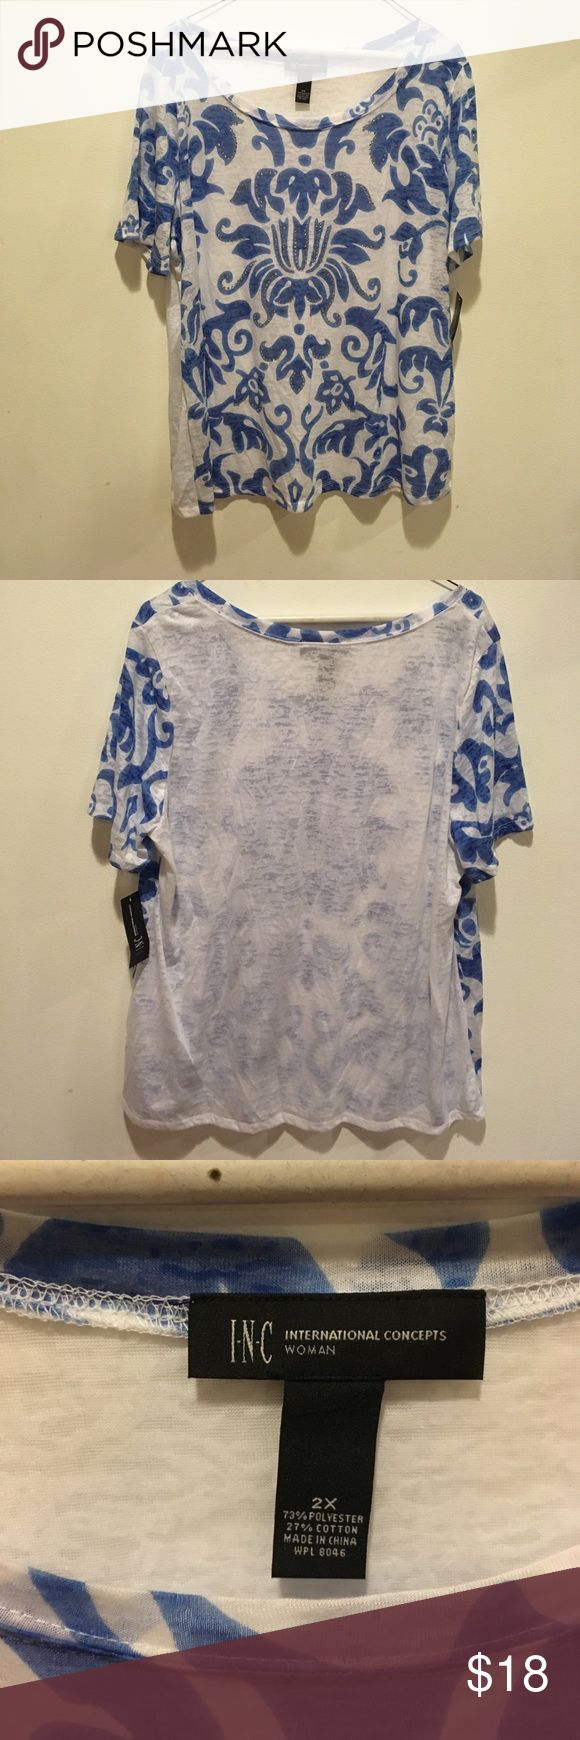 Blue and white short sleeve Blouse Pretty blue and white pattern with rhinestone embellishments in the front.   The back of the shirt is white.   Very comphy! INC International Concepts Tops Blouses